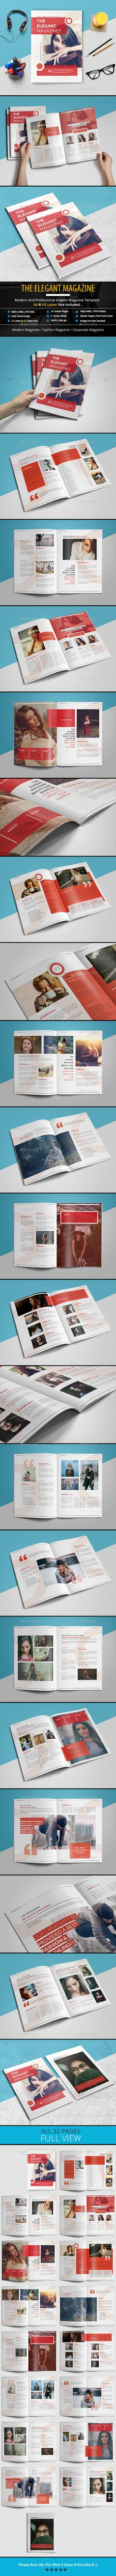 The Elegant Magazine Template InDesign INDD - 32 Pages, A4 Size & US Letter